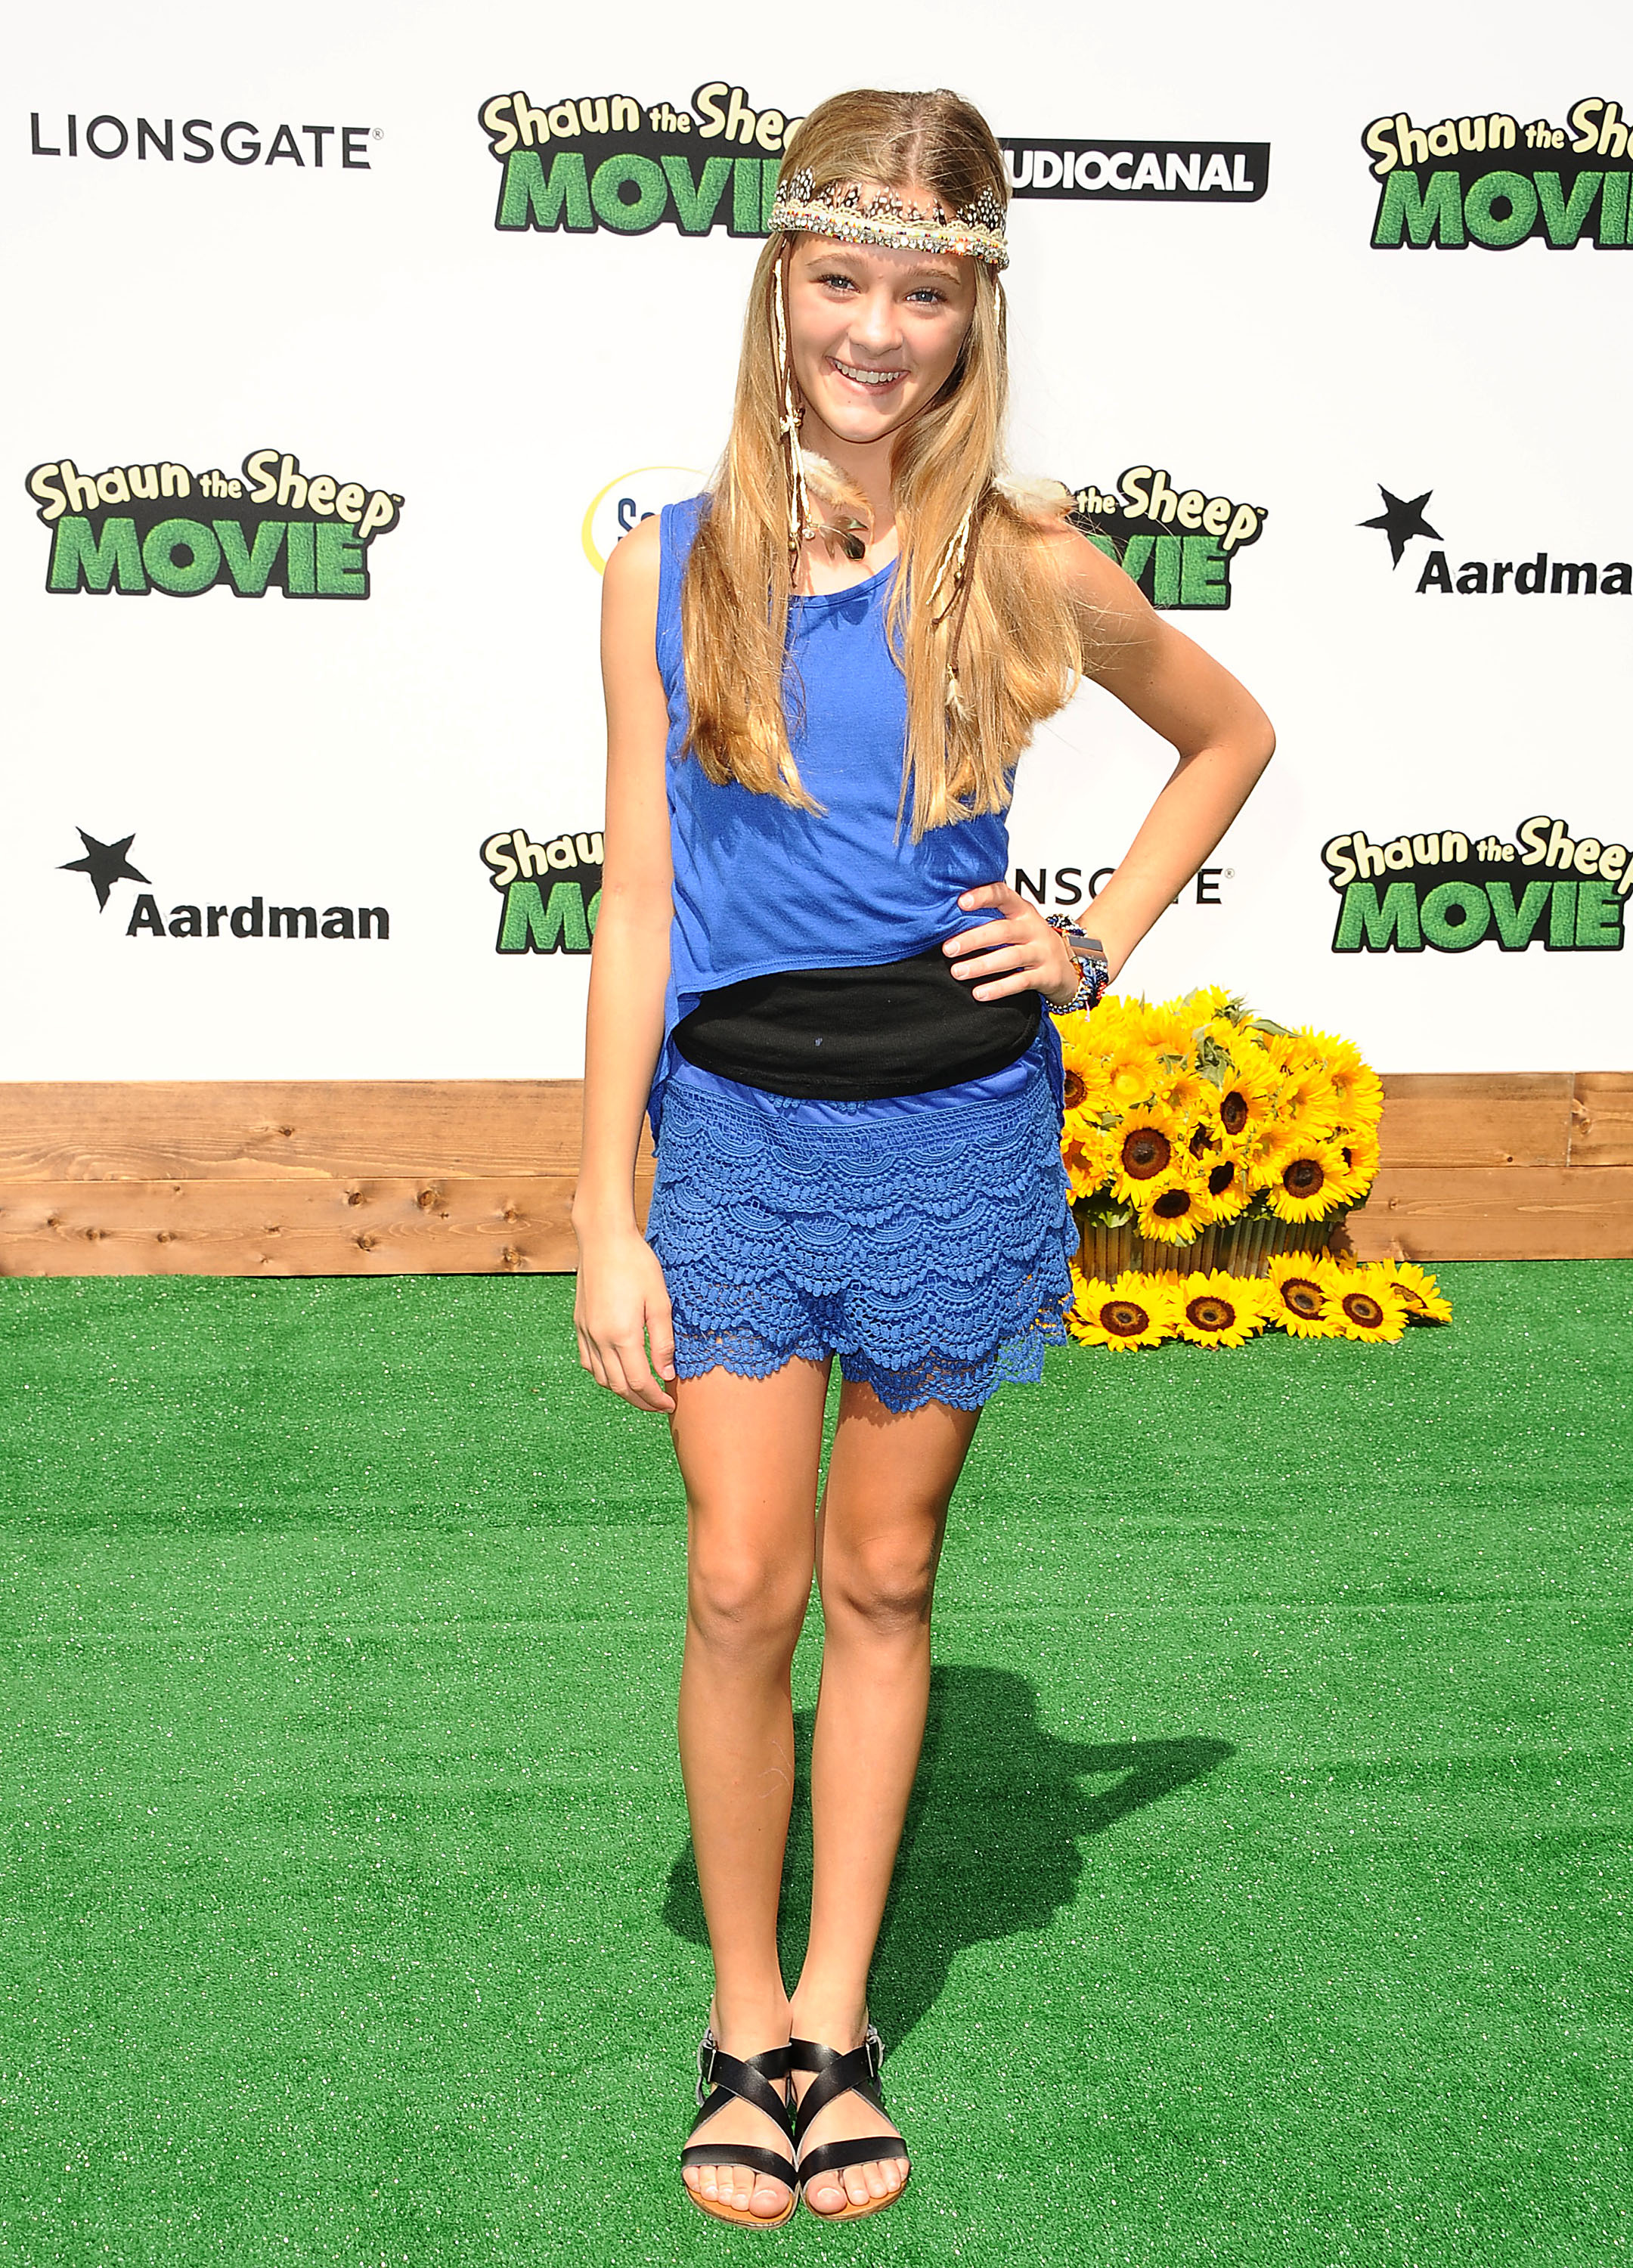 lizzy greene dancelizzy greene рост, lizzy greene vk, lizzy greene 2017, lizzy greene height, lizzy greene dance, lizzy greene wikipedia, lizzy greene сколько лет, lizzy greene snapchat, lizzy greene age, lizzy greene youtube, lizzy greene height and weight 2016, lizzy greene born, lizzy greene hawaii, lizzy greene poster, lizzy greene photoshoot, lizzy greene photo, lizzy greene height and weight 2017, lizzy greene bio, lizzy greene biografia, lizzy greene snap